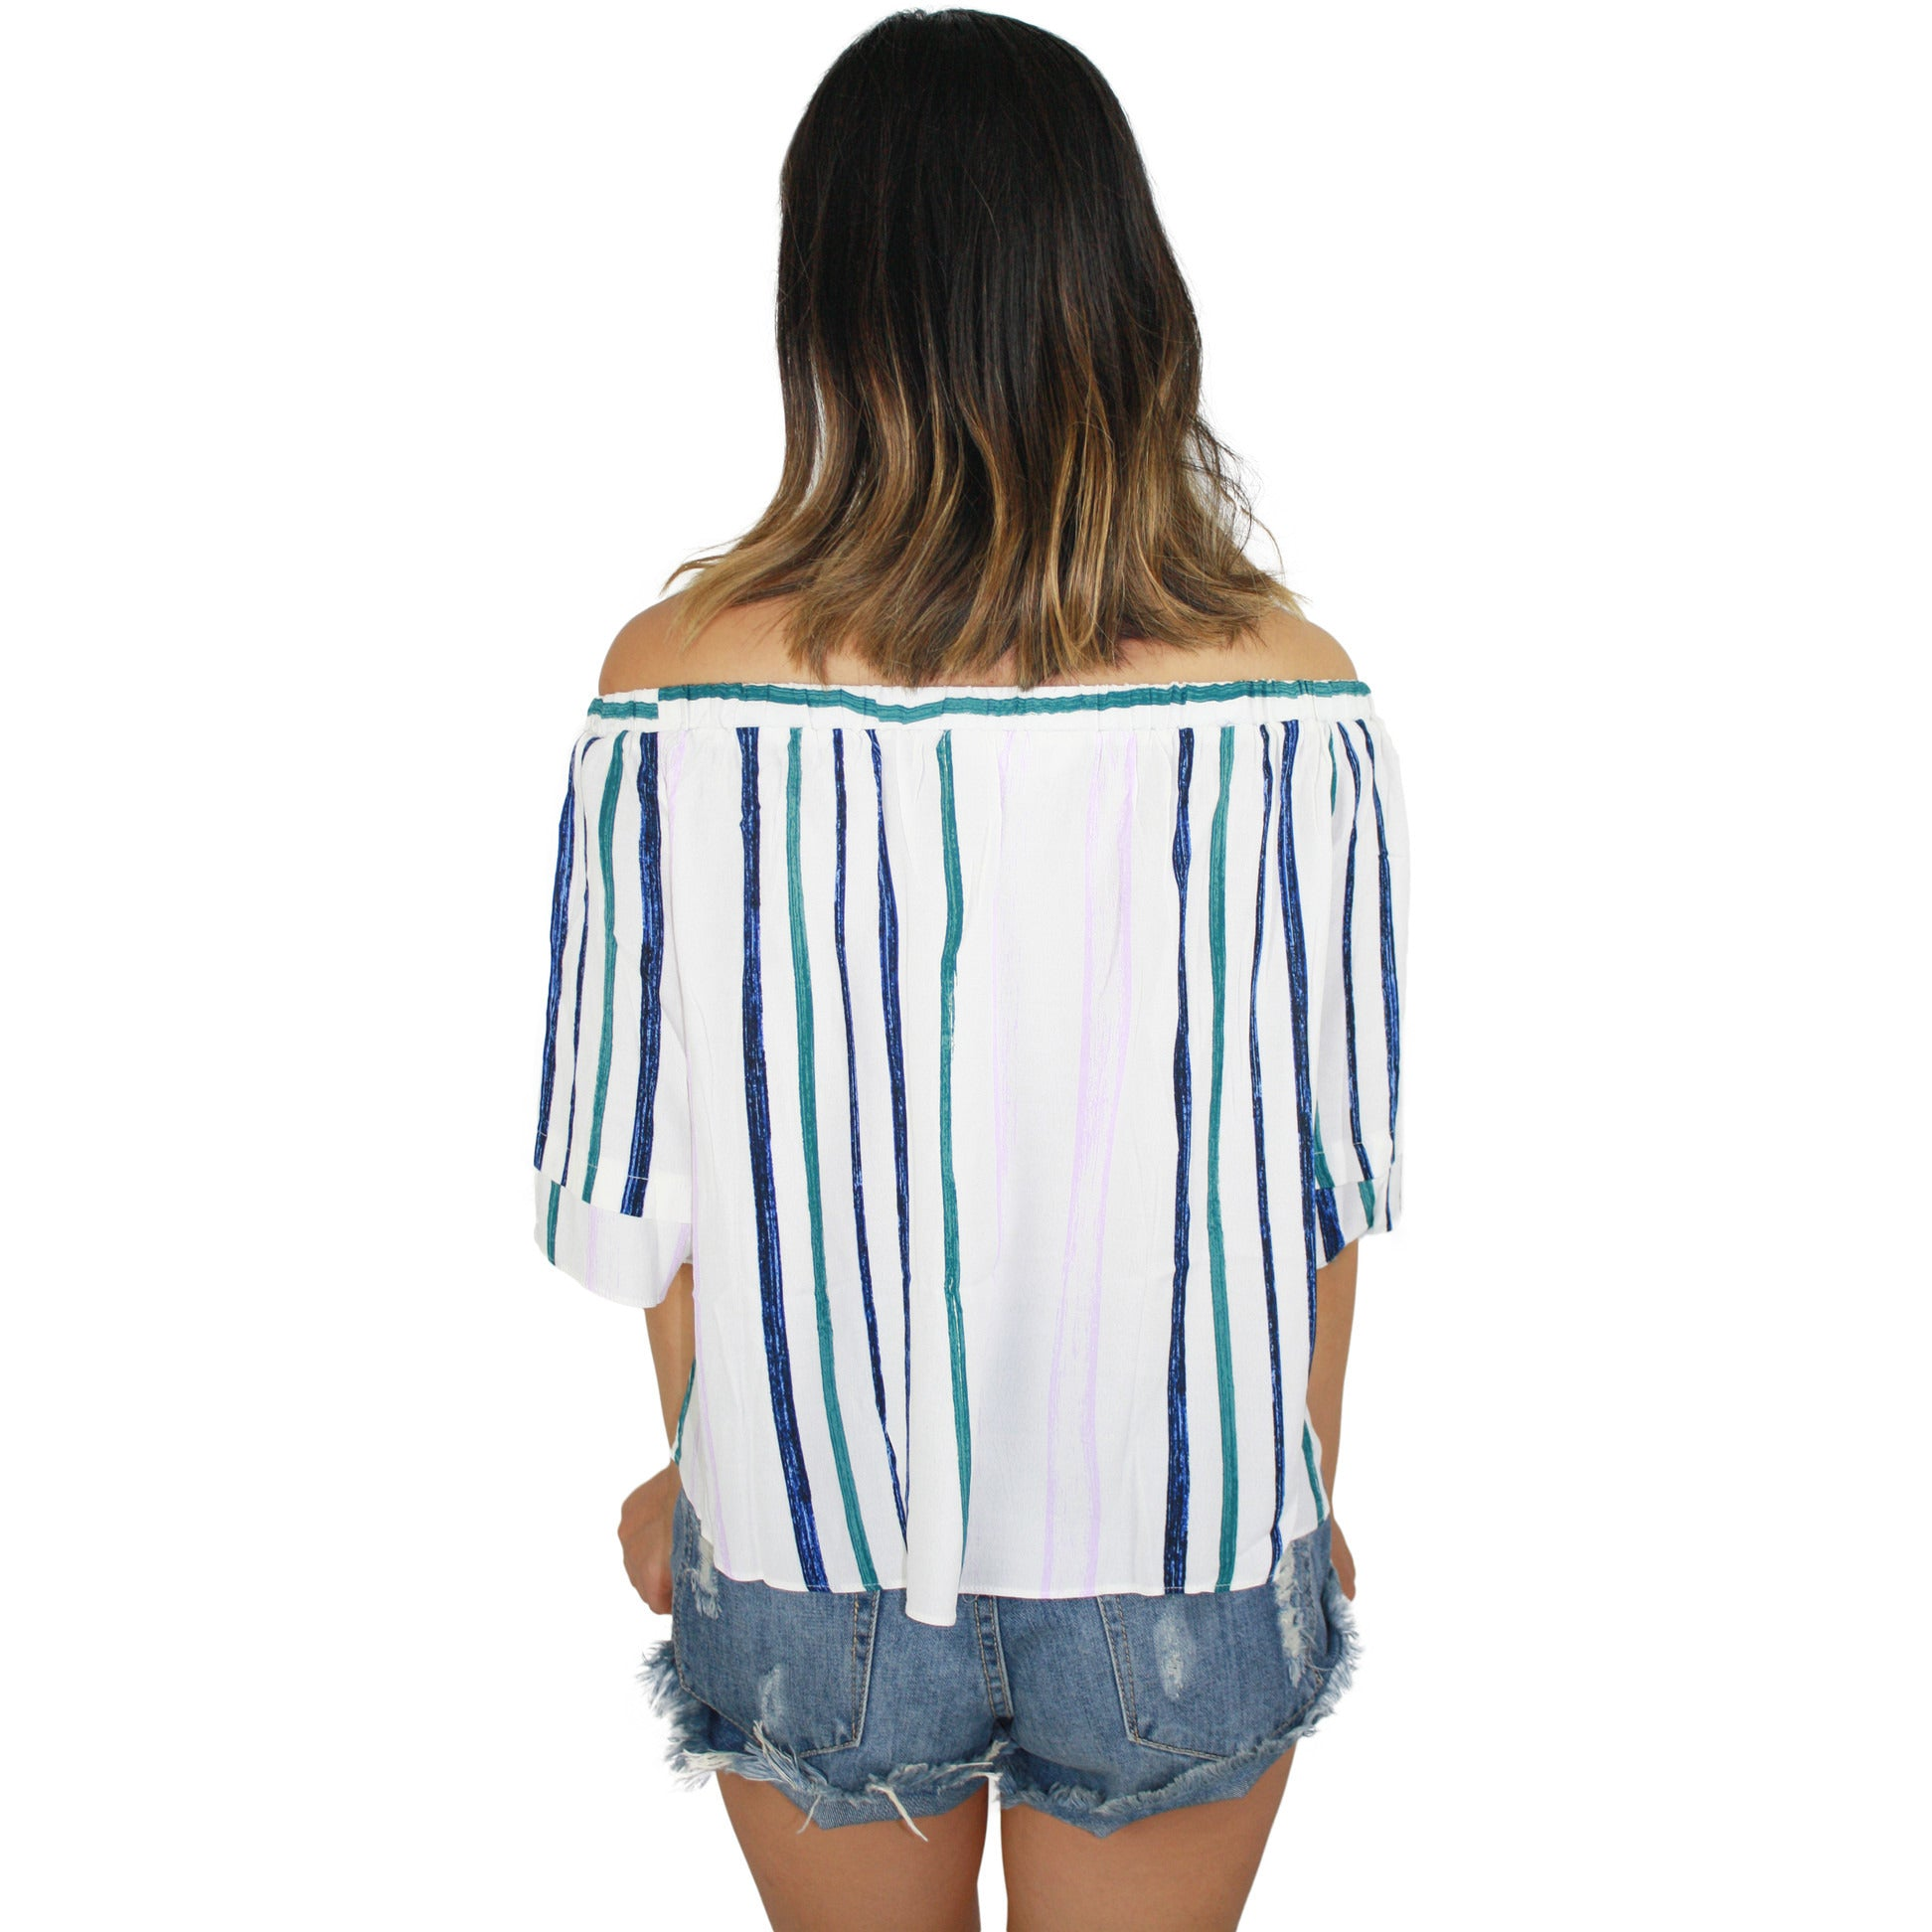 Savannah Off Shoulder Top in White Multi Stripe